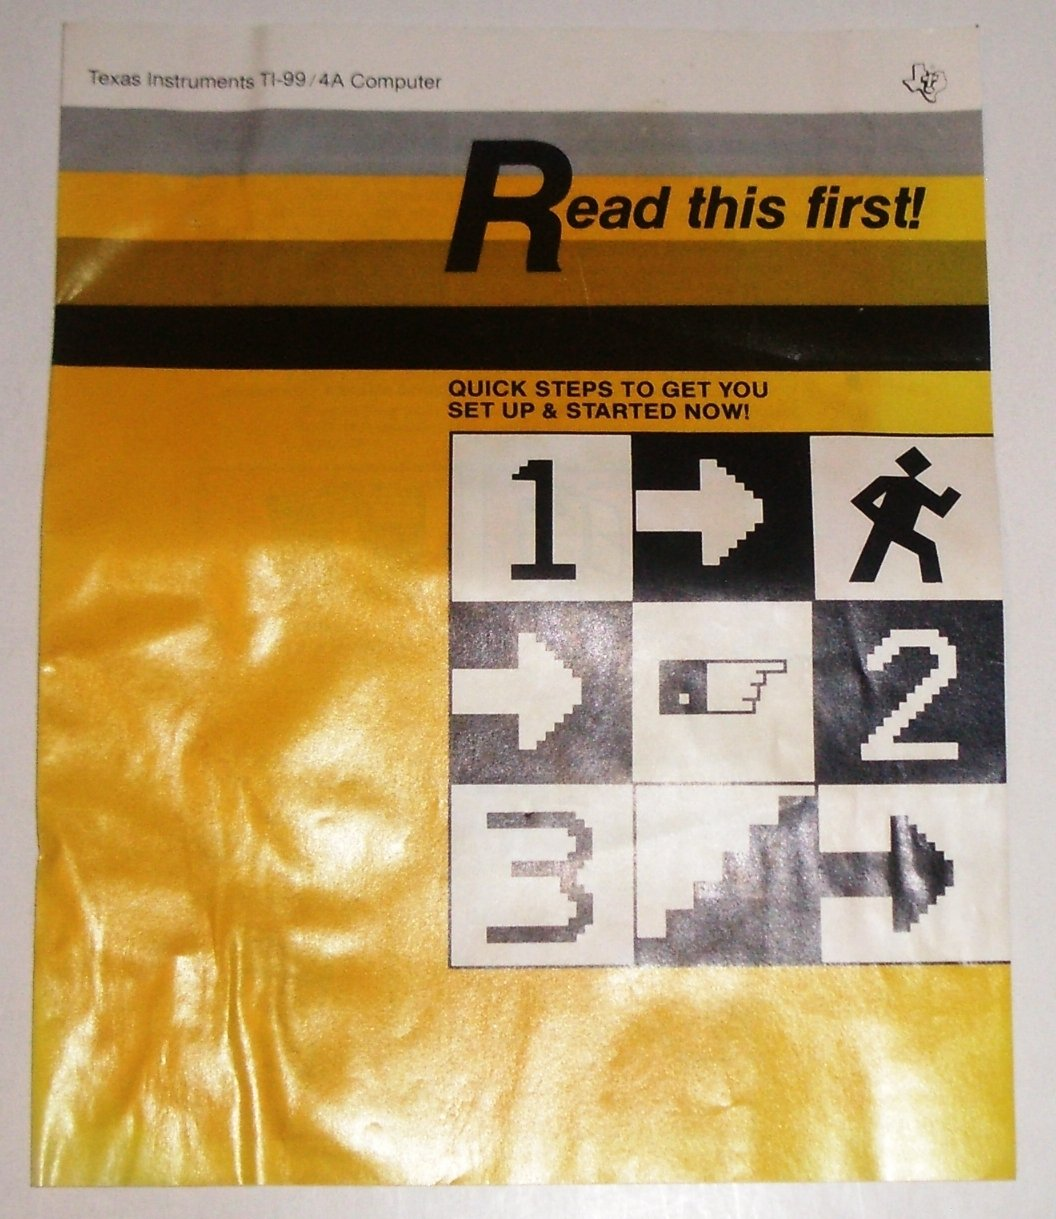 3 TI-99 Texas Instruments Catalogs 1989, Quick Start Guide, Specials Pamphlet